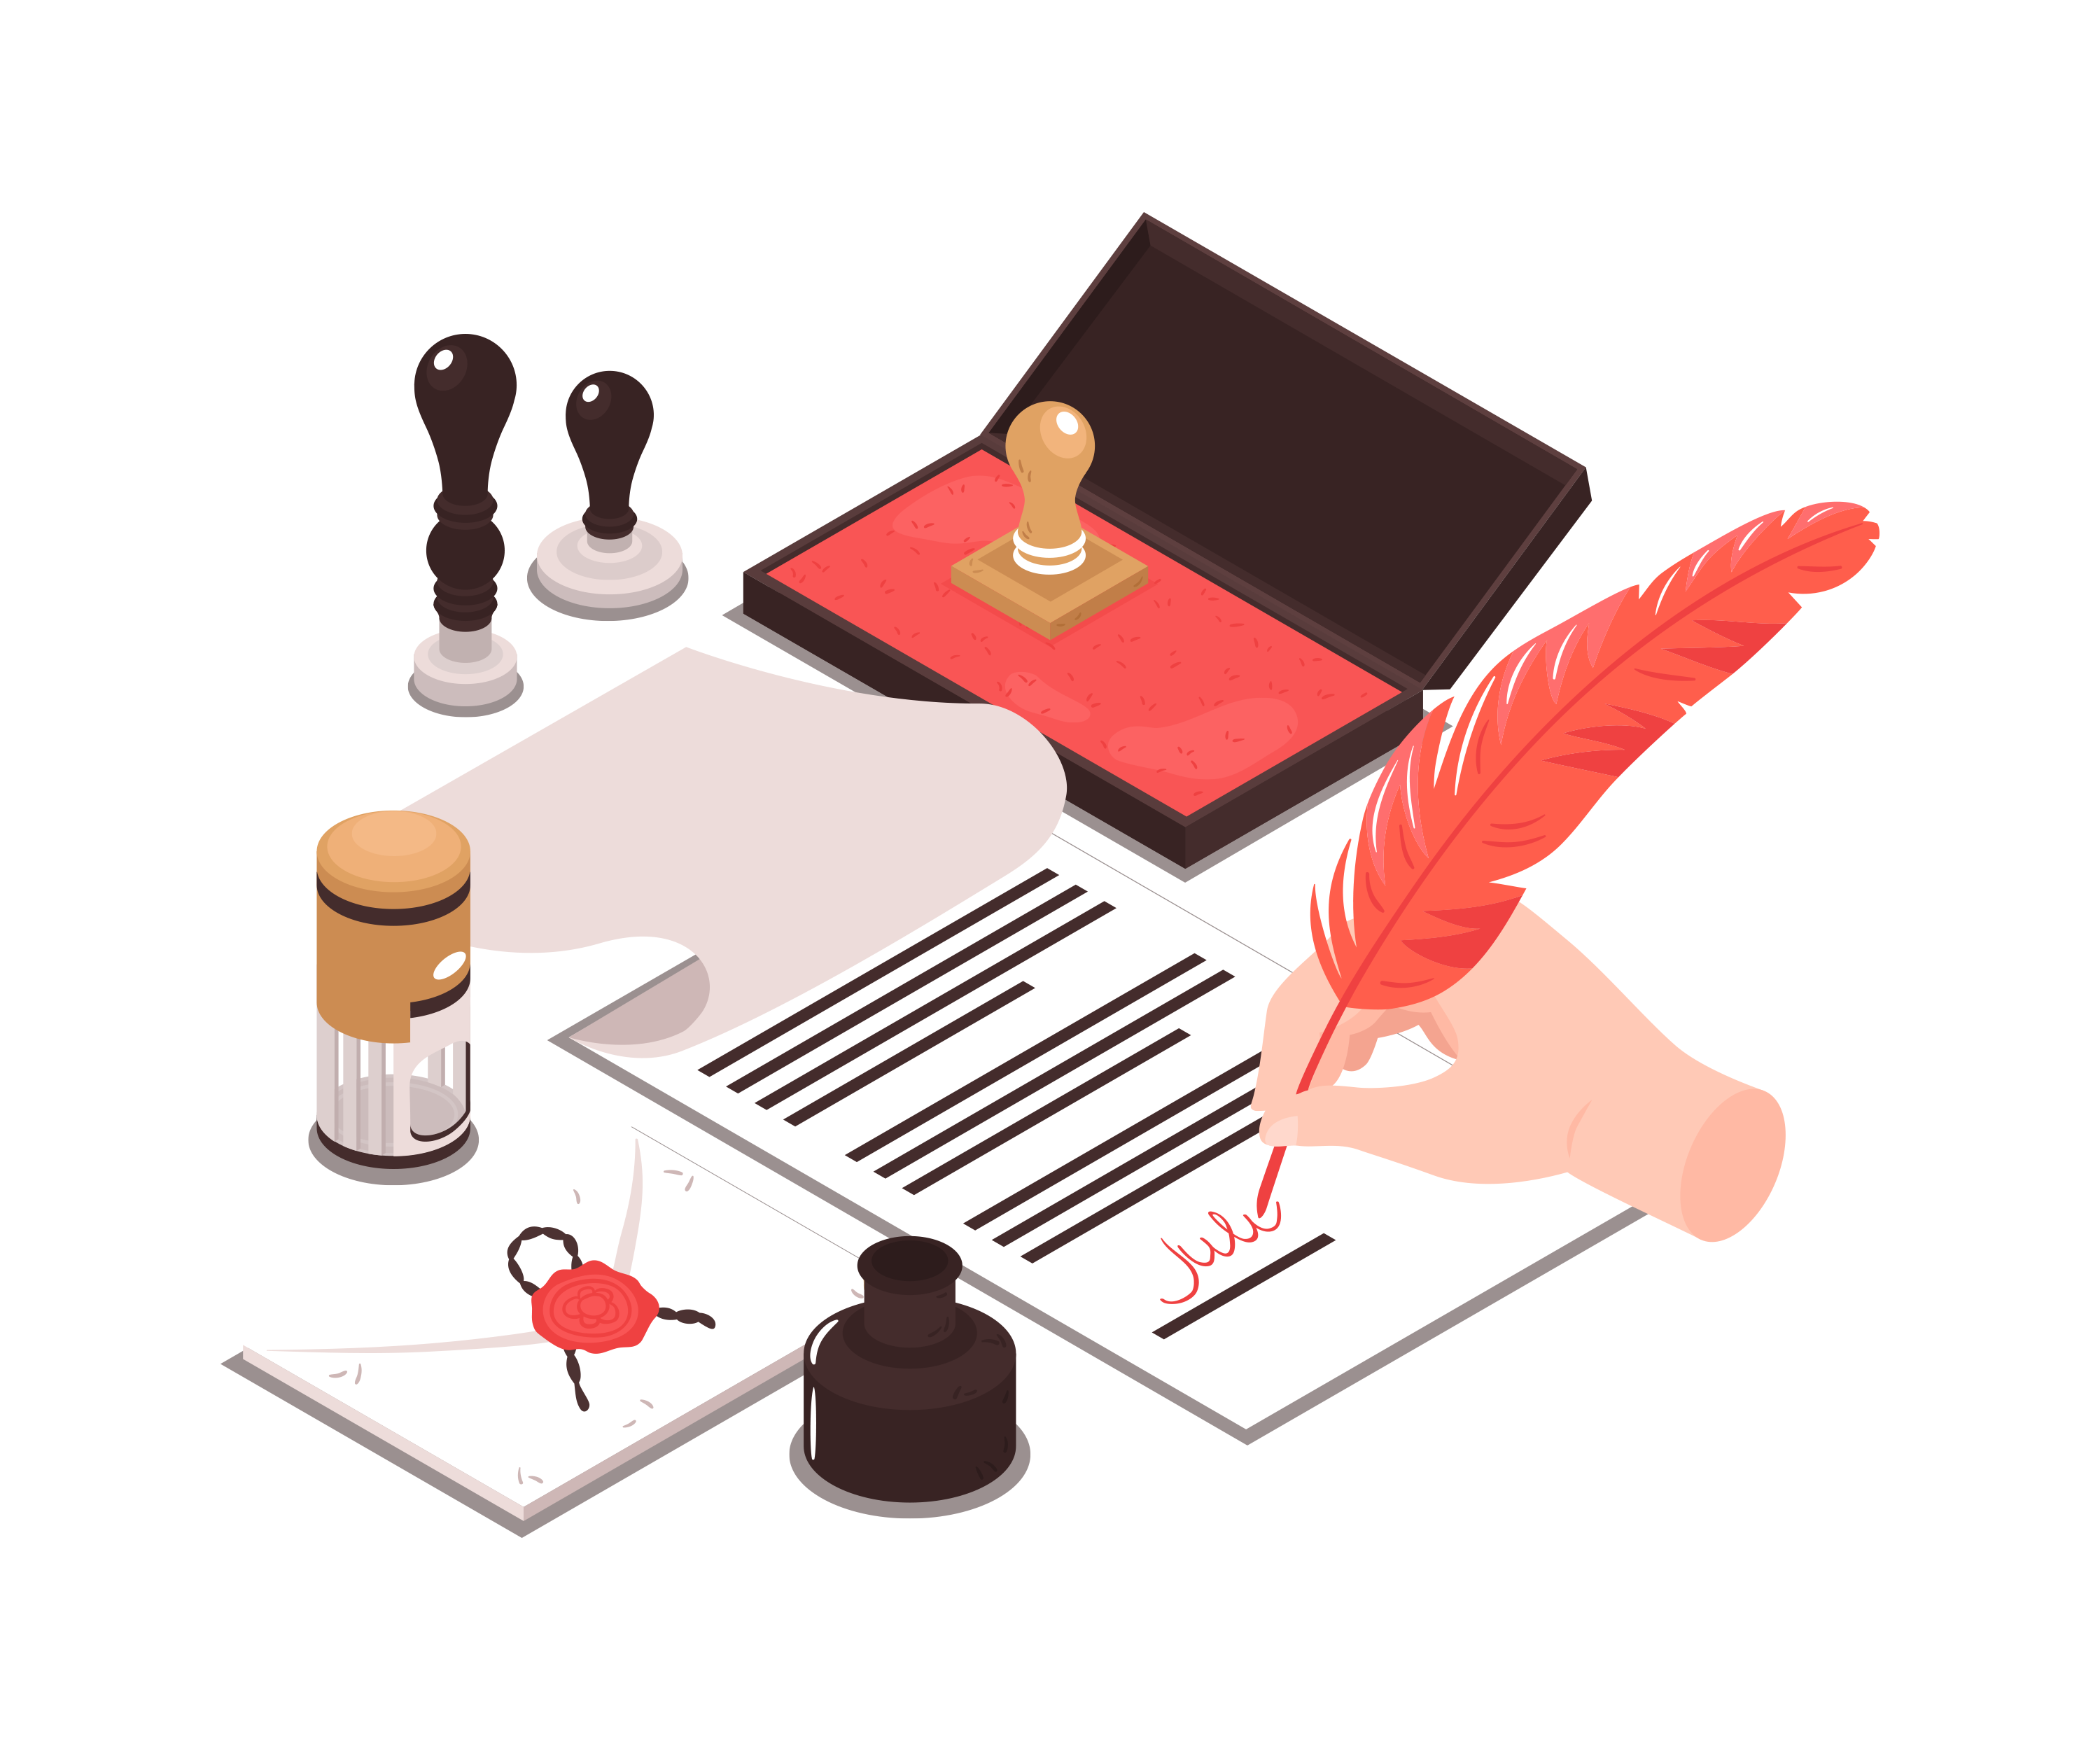 business lawyer signing a contract on a legal note pad with a red feather pen and brown legal stamp